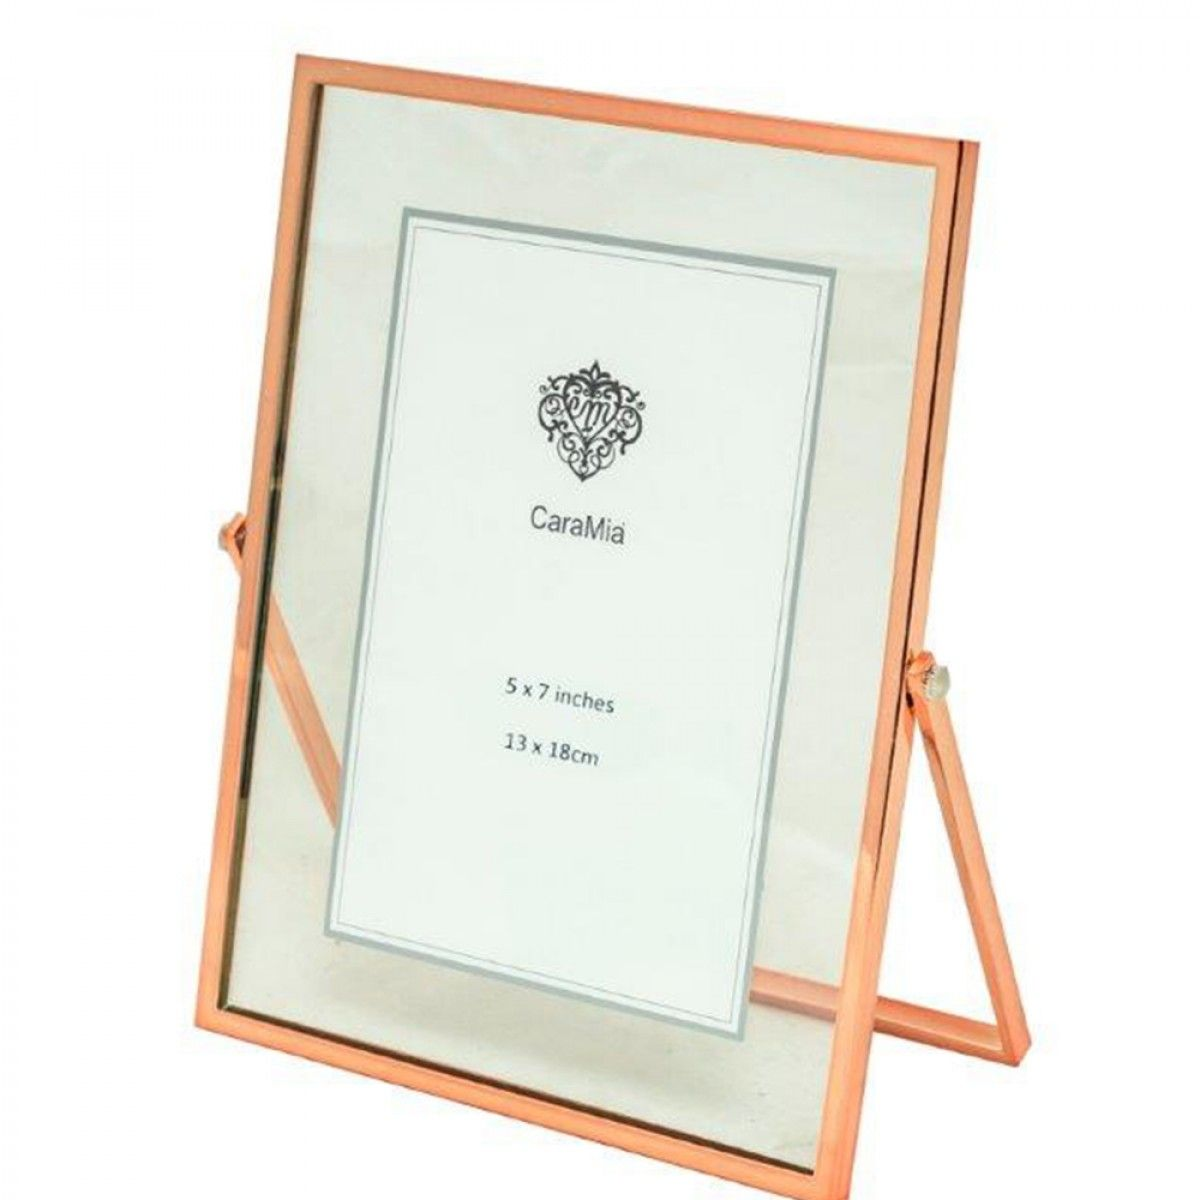 caramia rose gold photo frame m